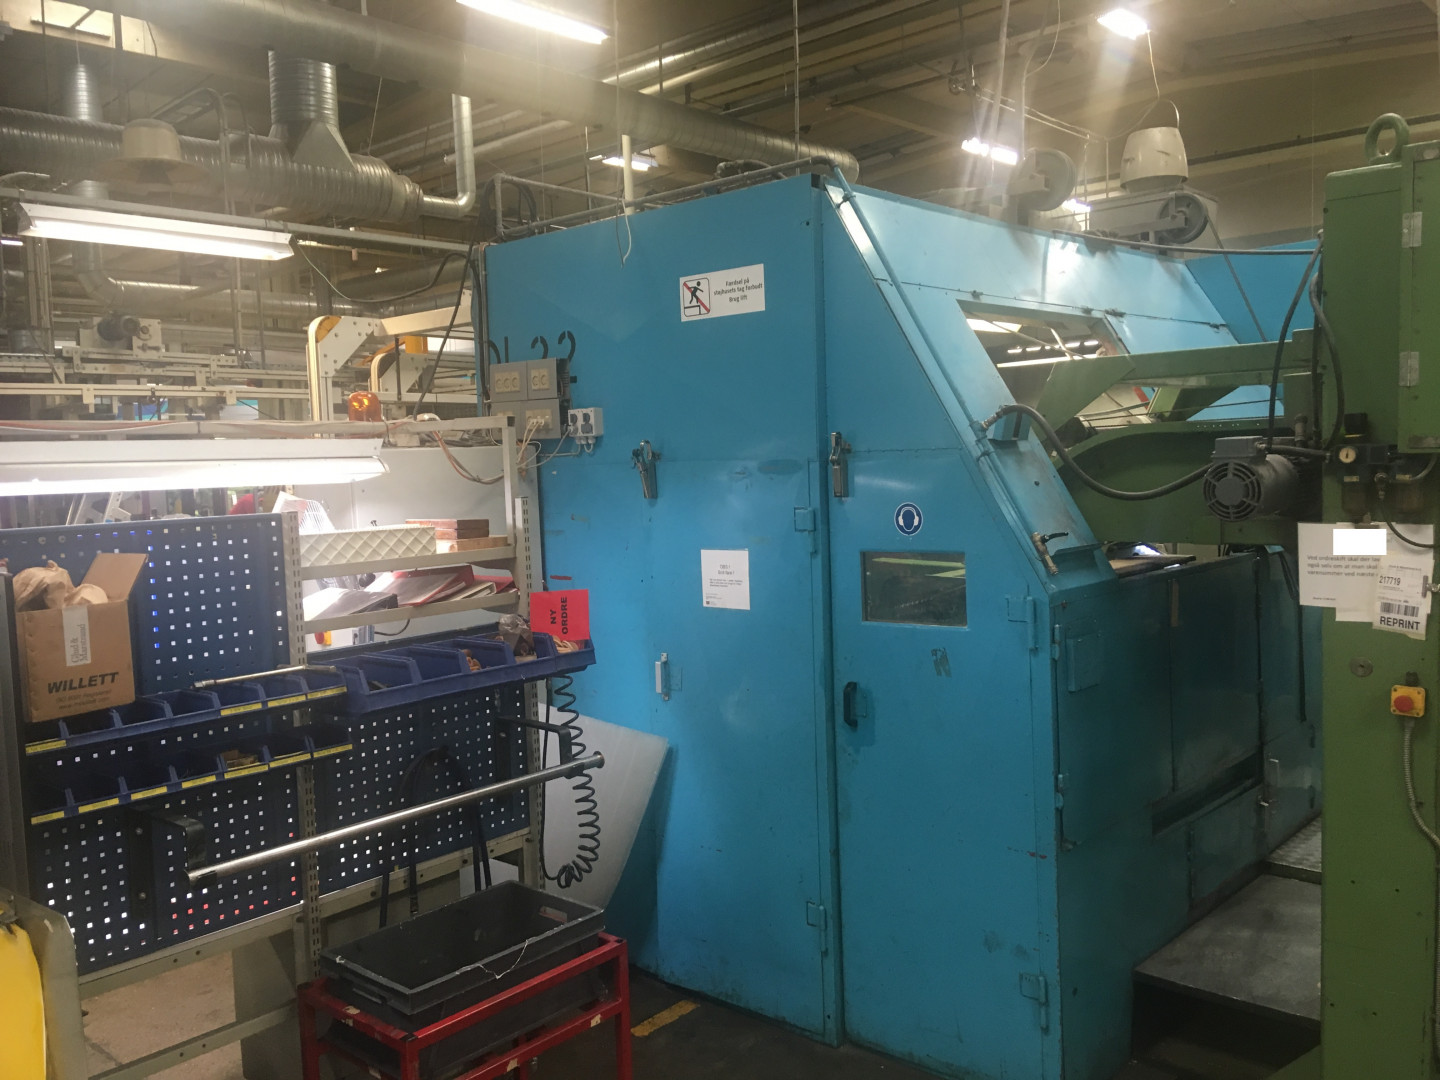 Metal Box 314 stripfeed press